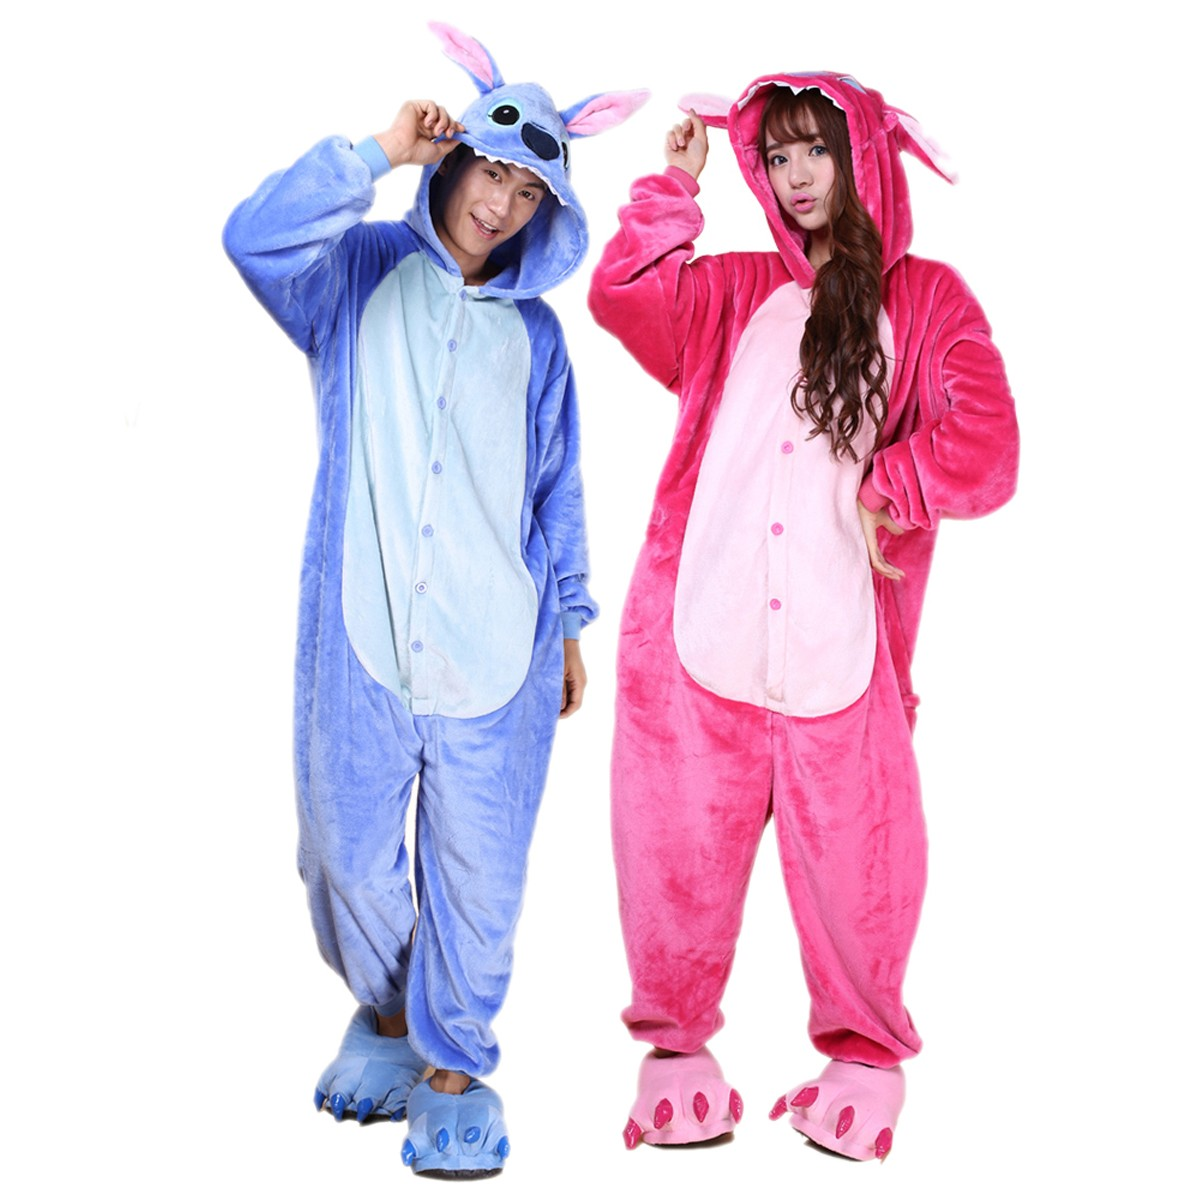 6e840b2653f9 Stitch and Angel Onesie for Adult Kigurumi Pajama Disney Lilo & Stitch  Halloween Costumes